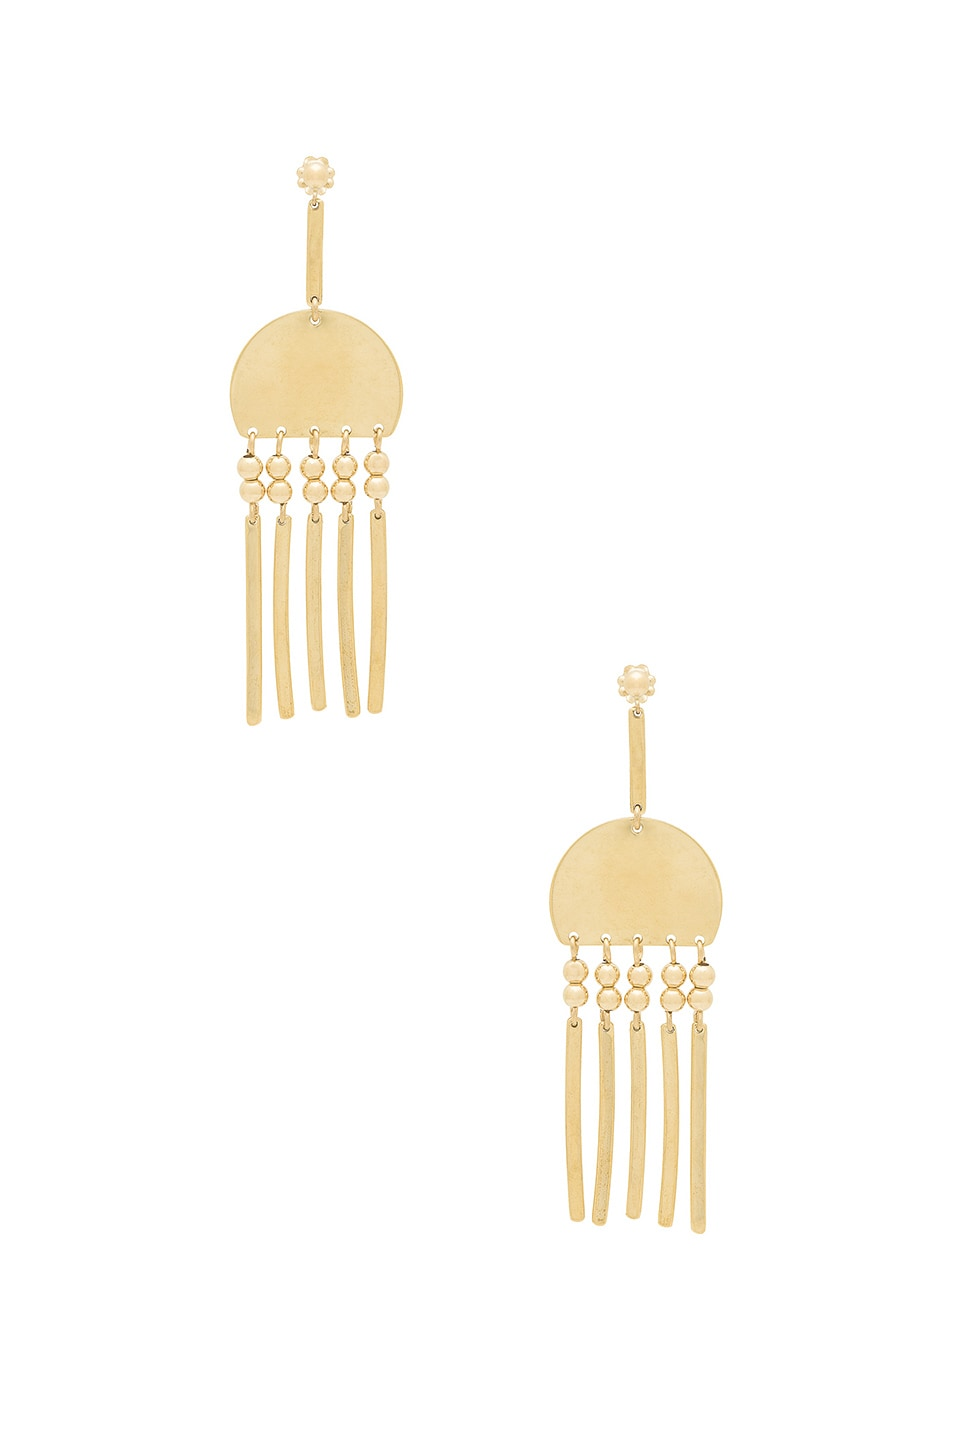 PARADIGM RAIN DANCE EARRINGS